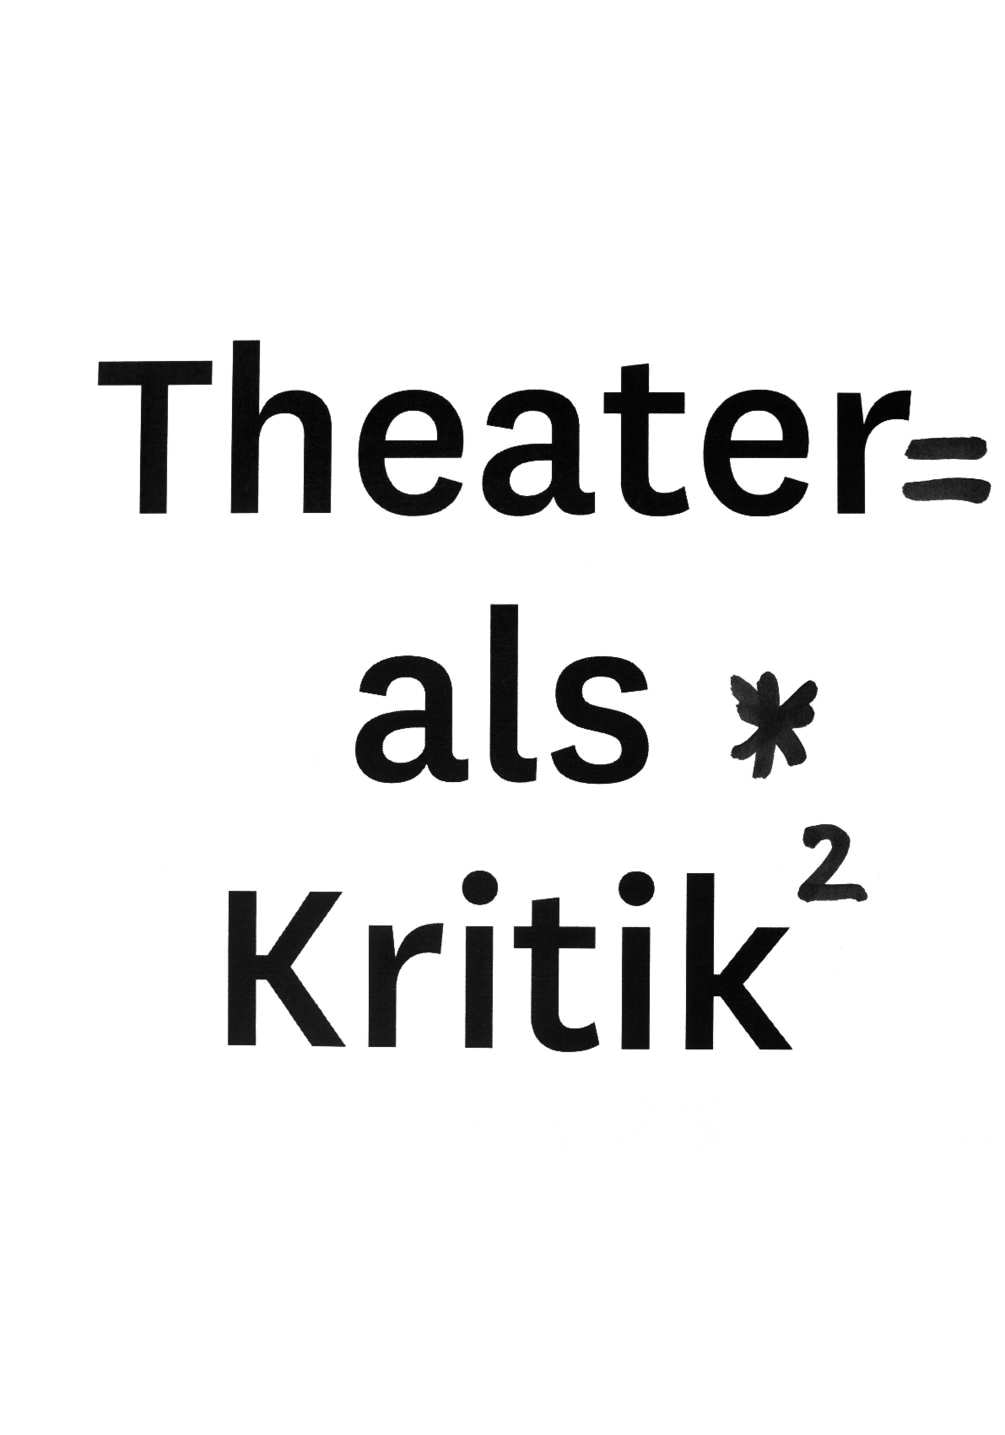 theater-as-critique-slip-01-1005x1435px